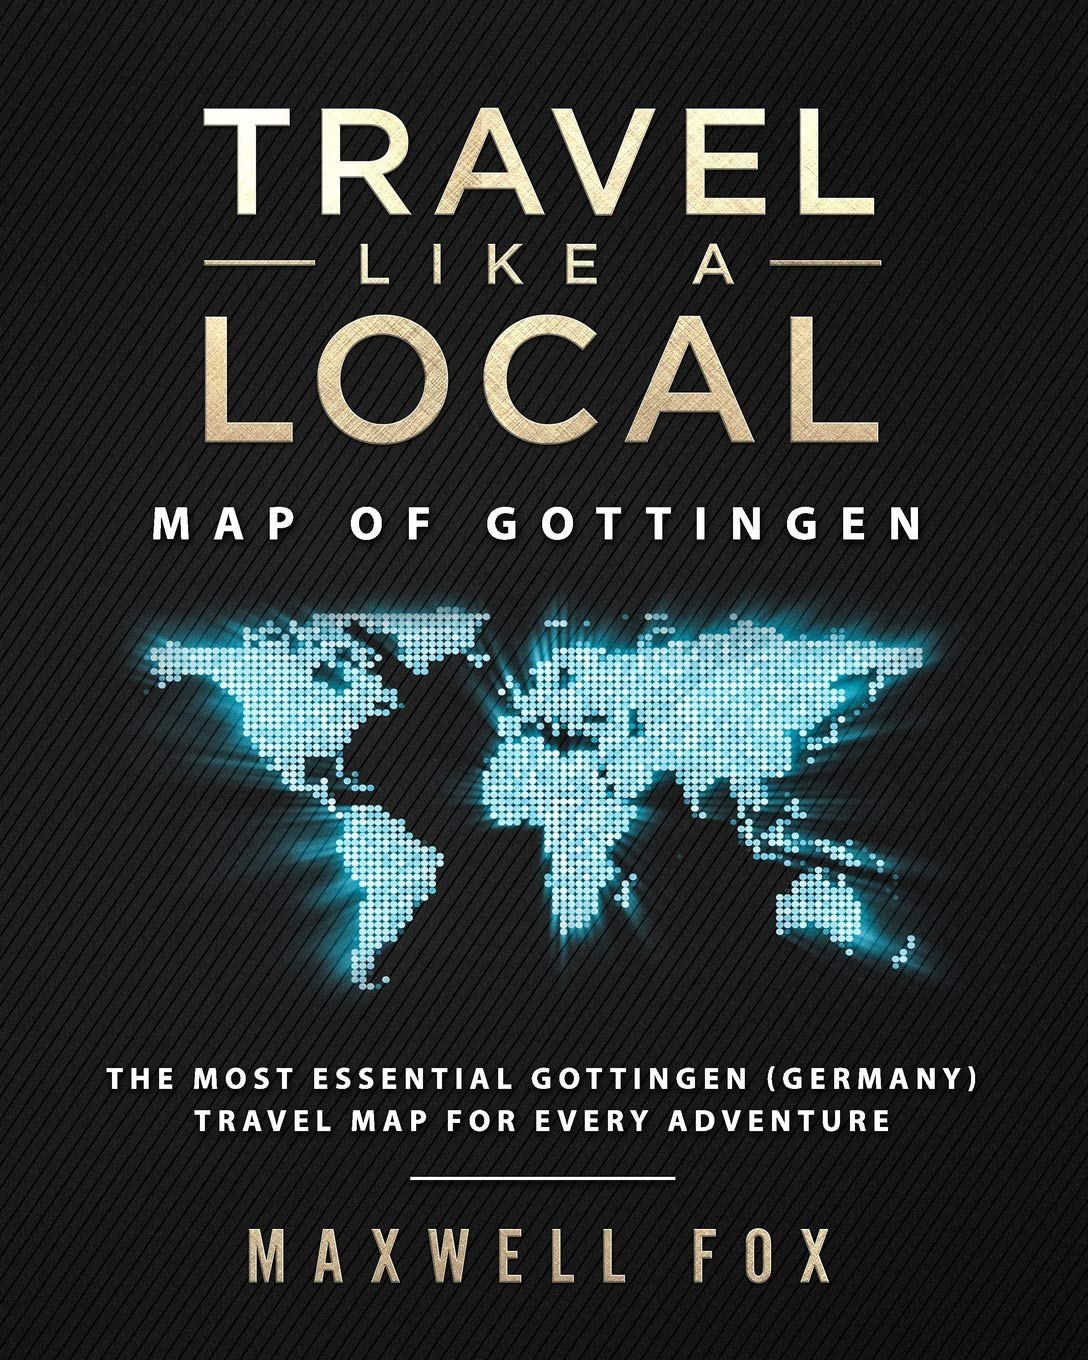 Map Of Germany Gottingen.Travel Like A Local Map Of Gottingen The Most Essential Gottingen